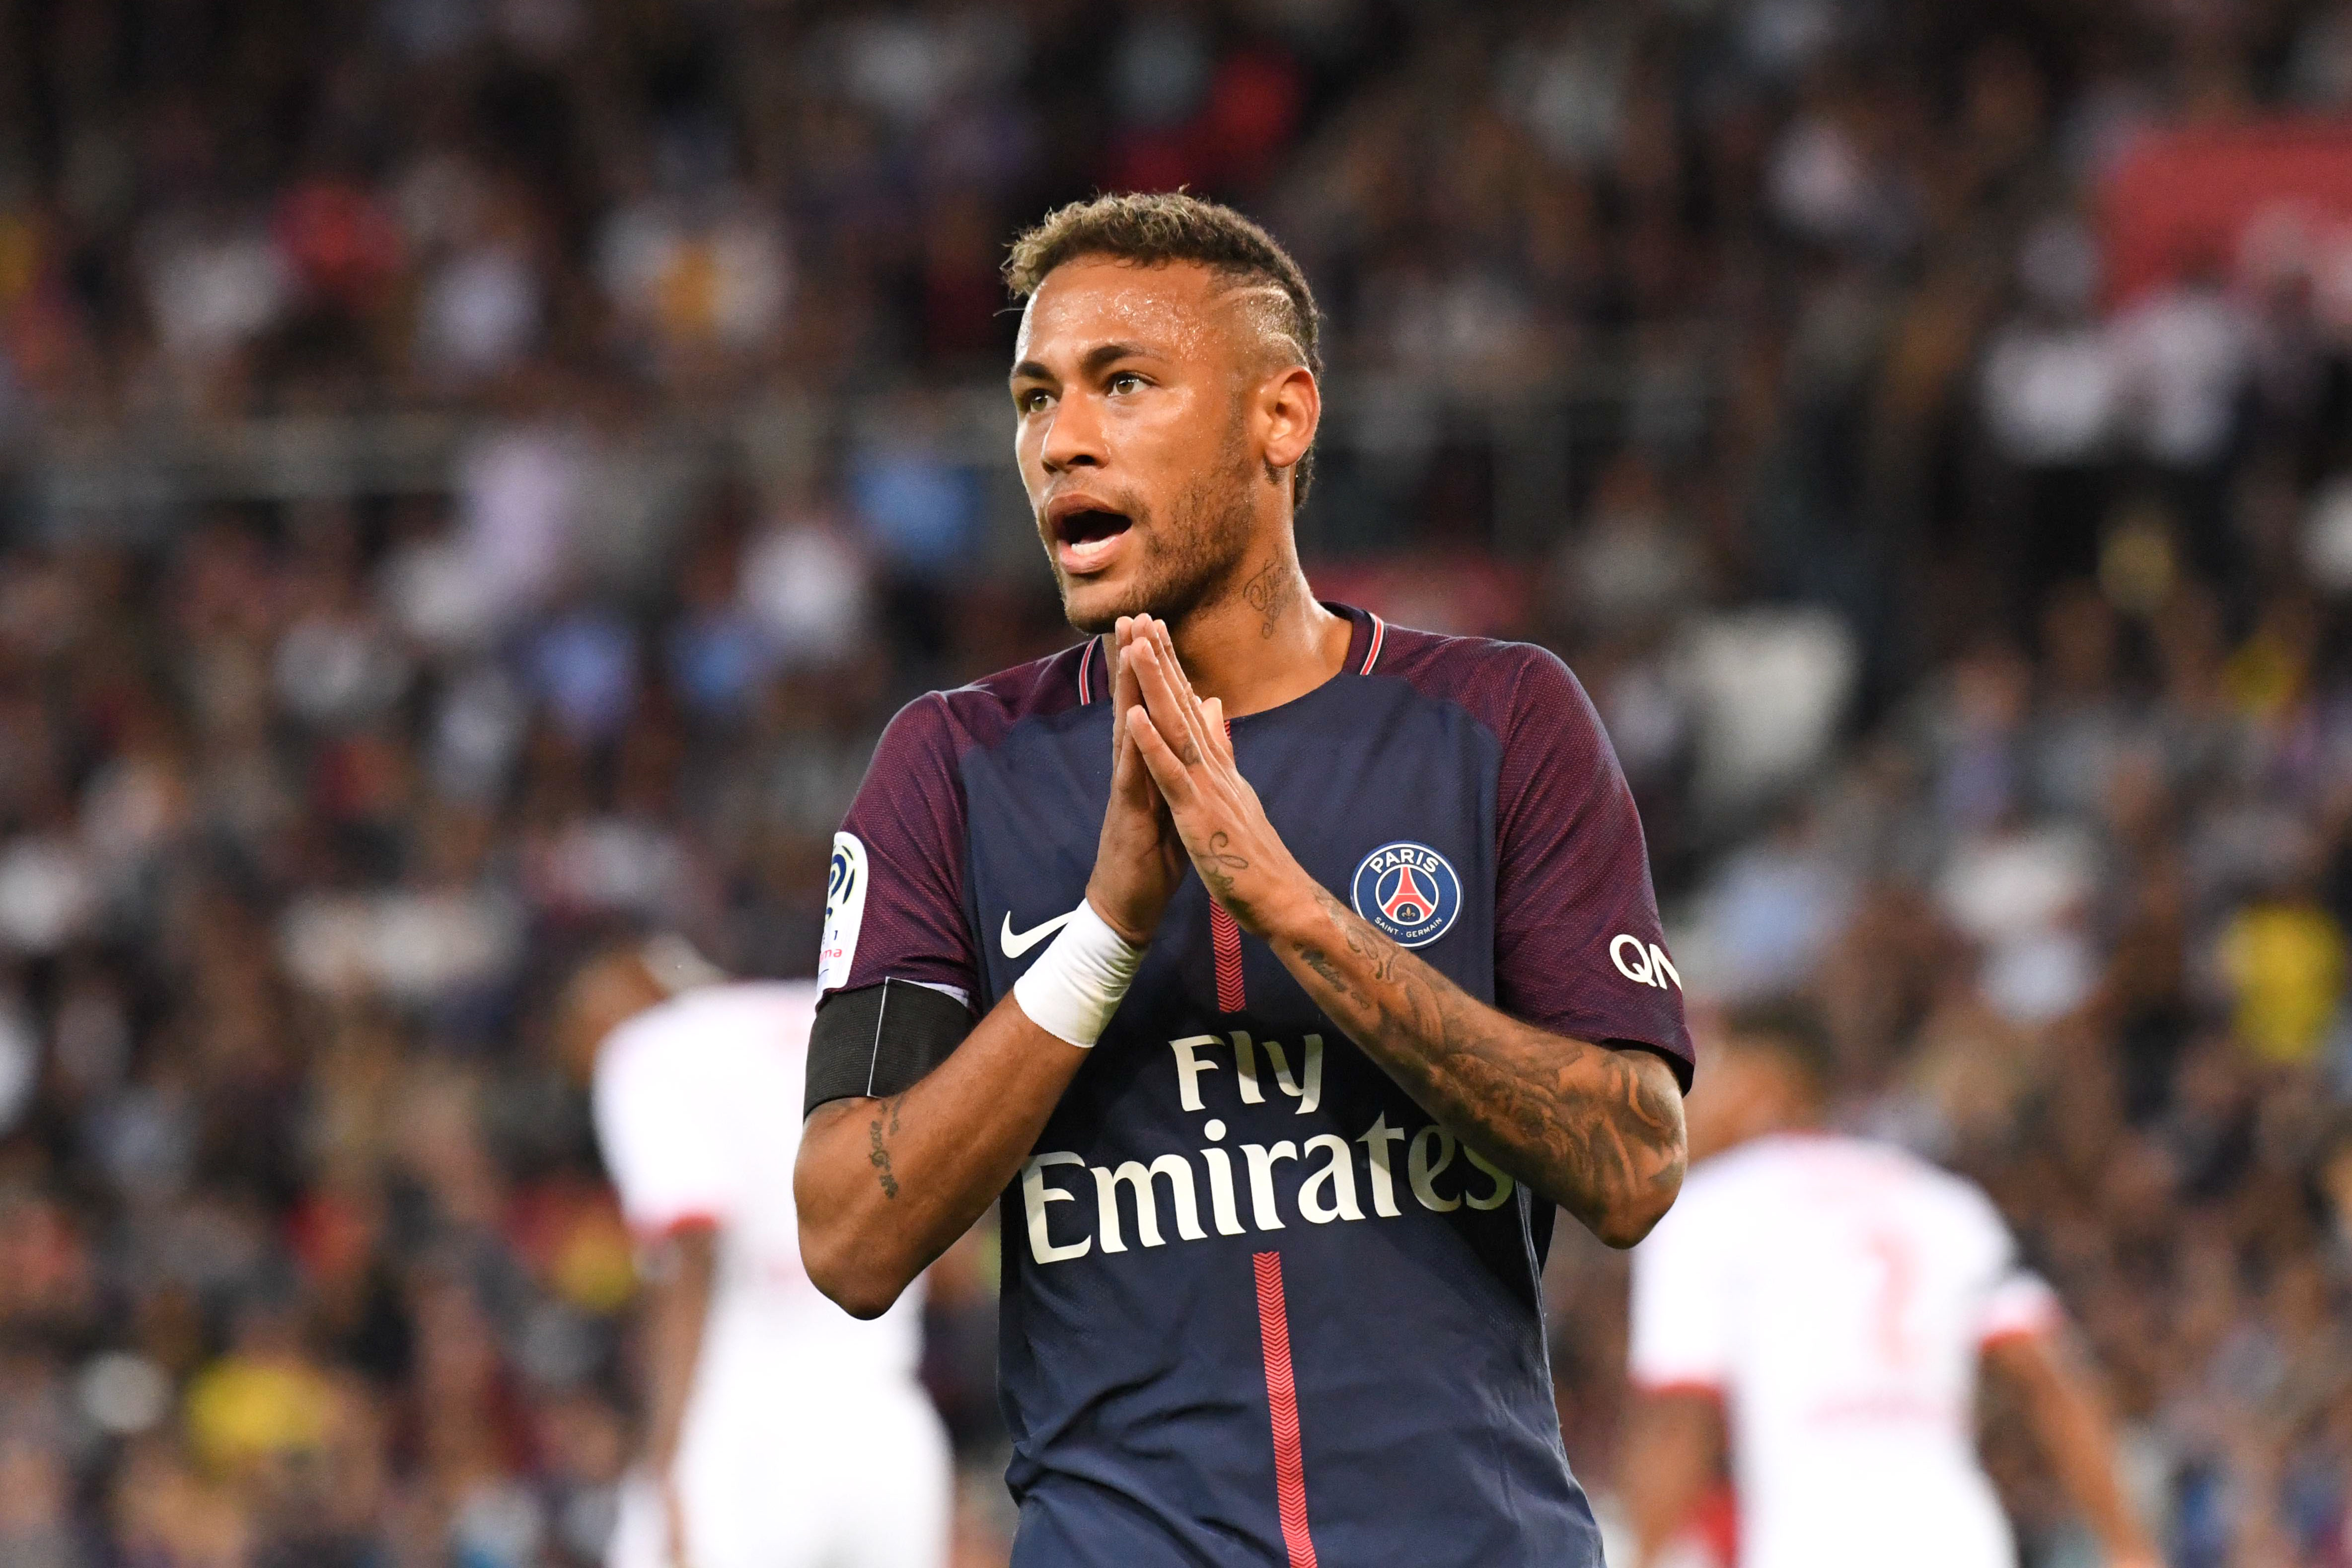 Football - Transferts - Plainte du FC Barcelone : Neymar et le PSG contre-attaquent